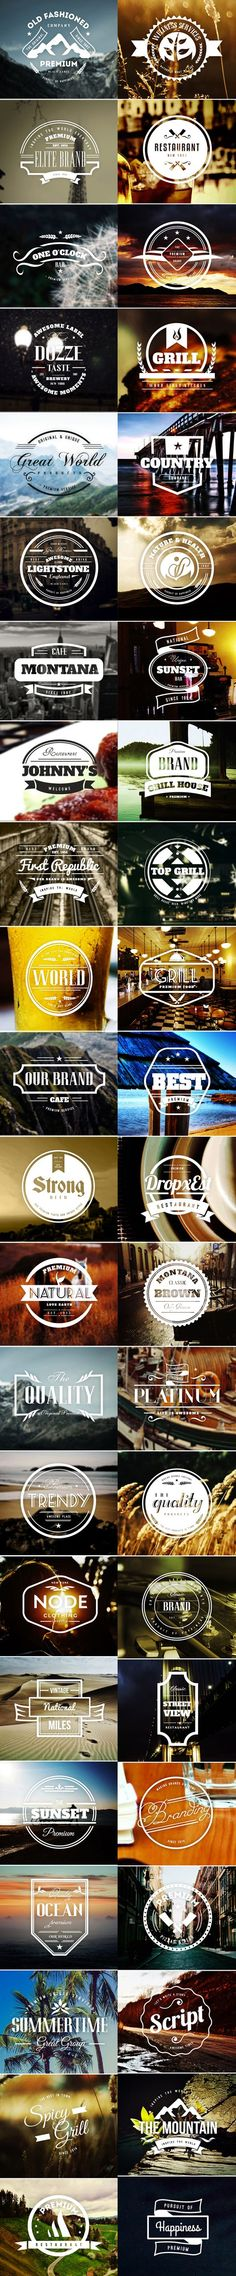 45 Vintage Labels & Badges Logos - Premium Bundle by Design District, via Behance: